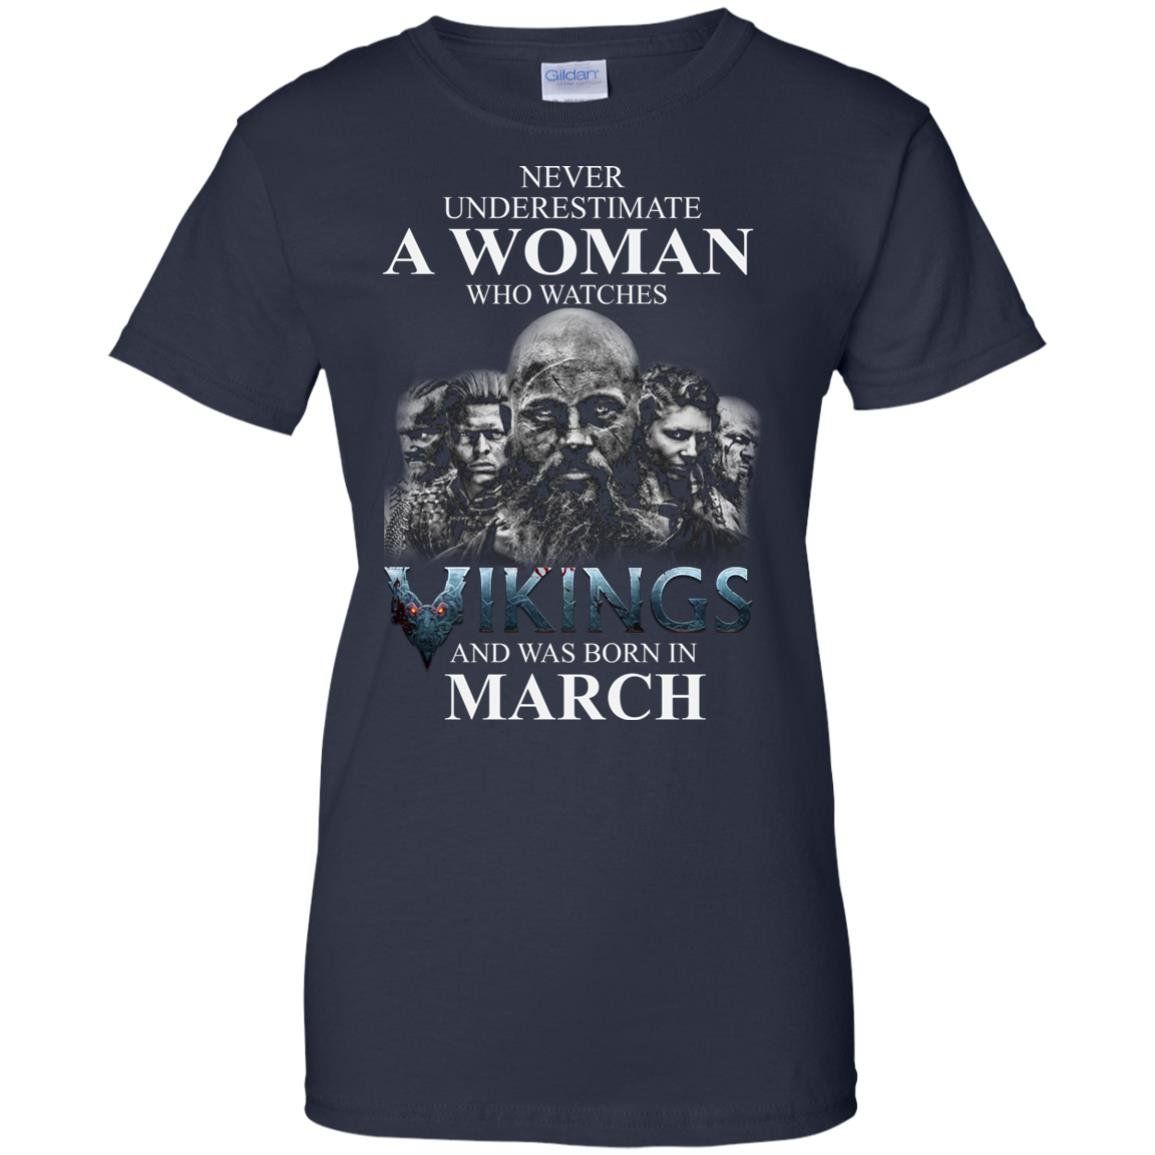 image 1338 - Never Underestimate A woman who watches Vikings and was born in March shirt